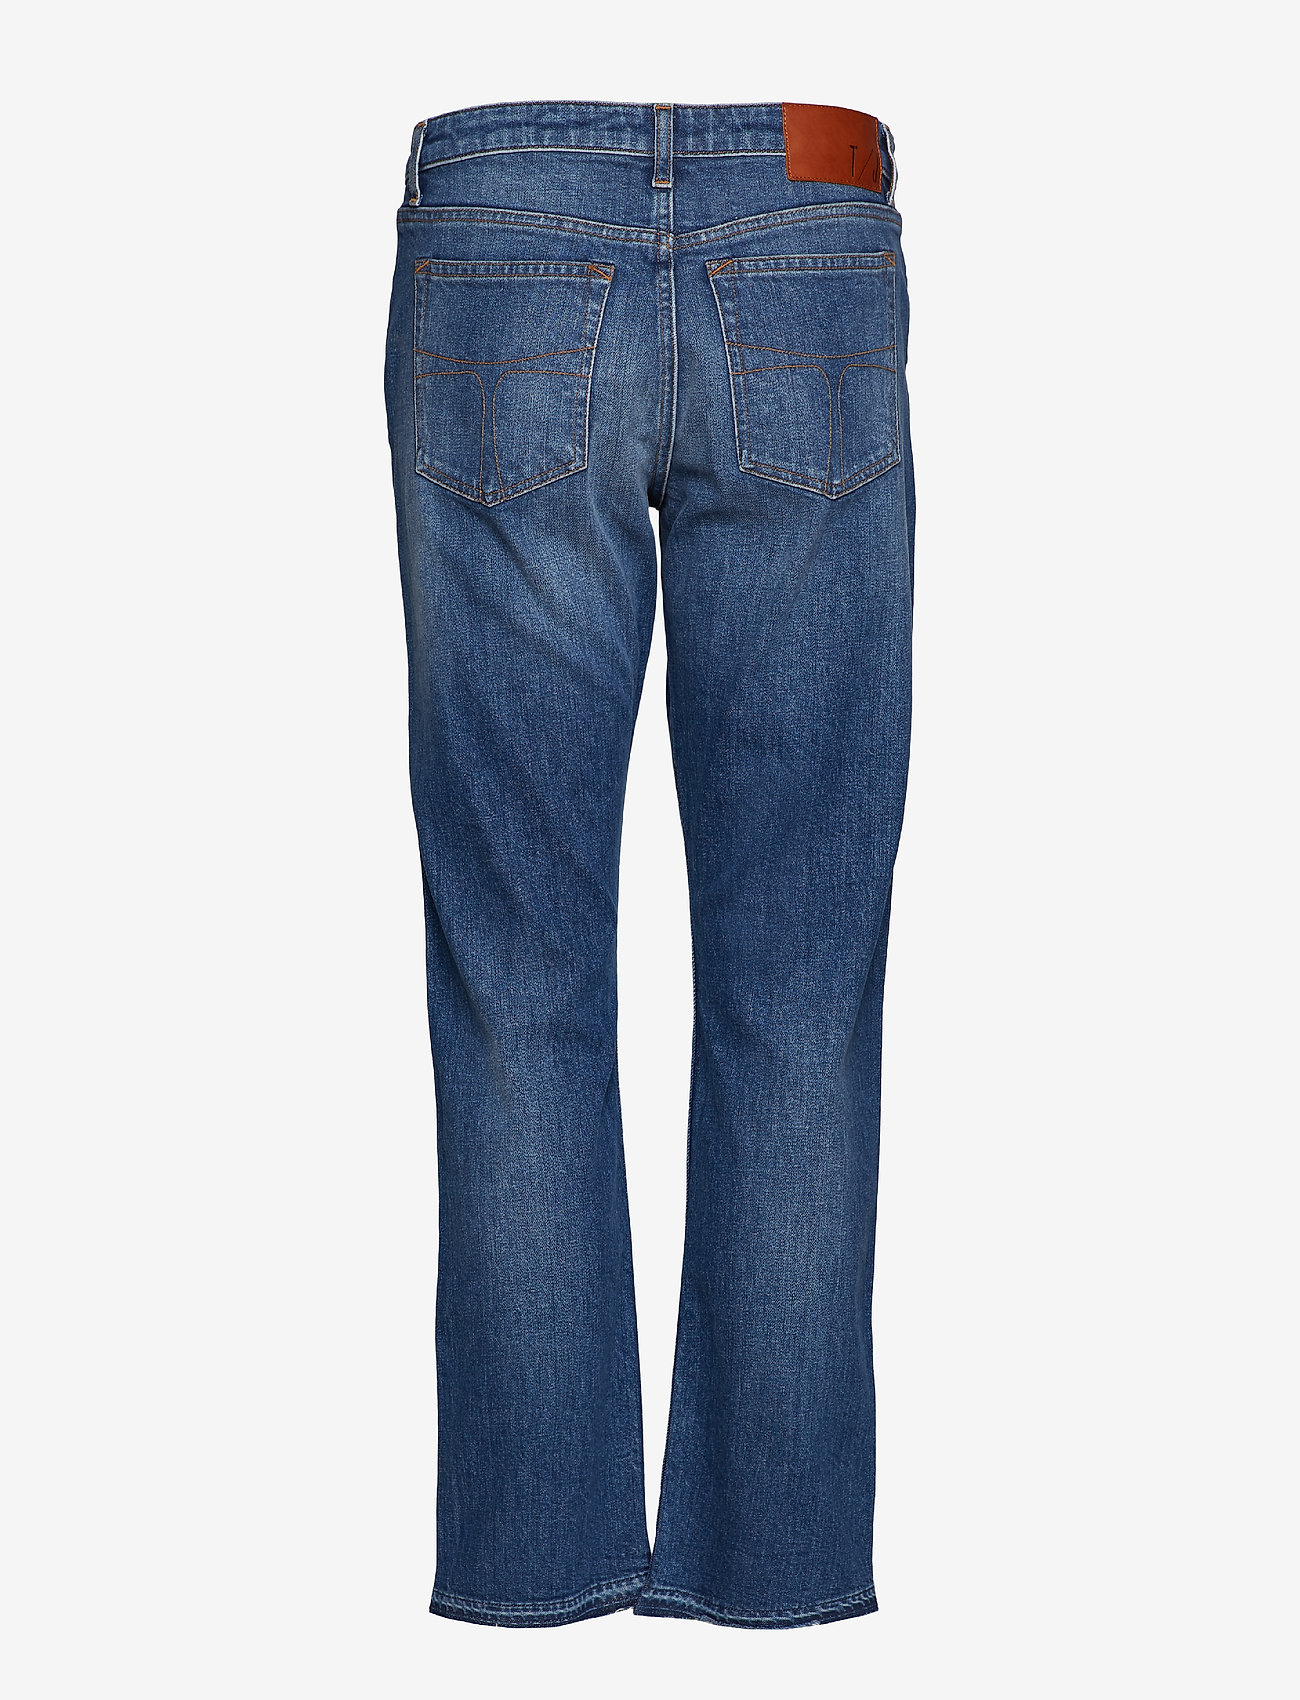 Tiger Of Sweden Jeans Aude - Medium Blue